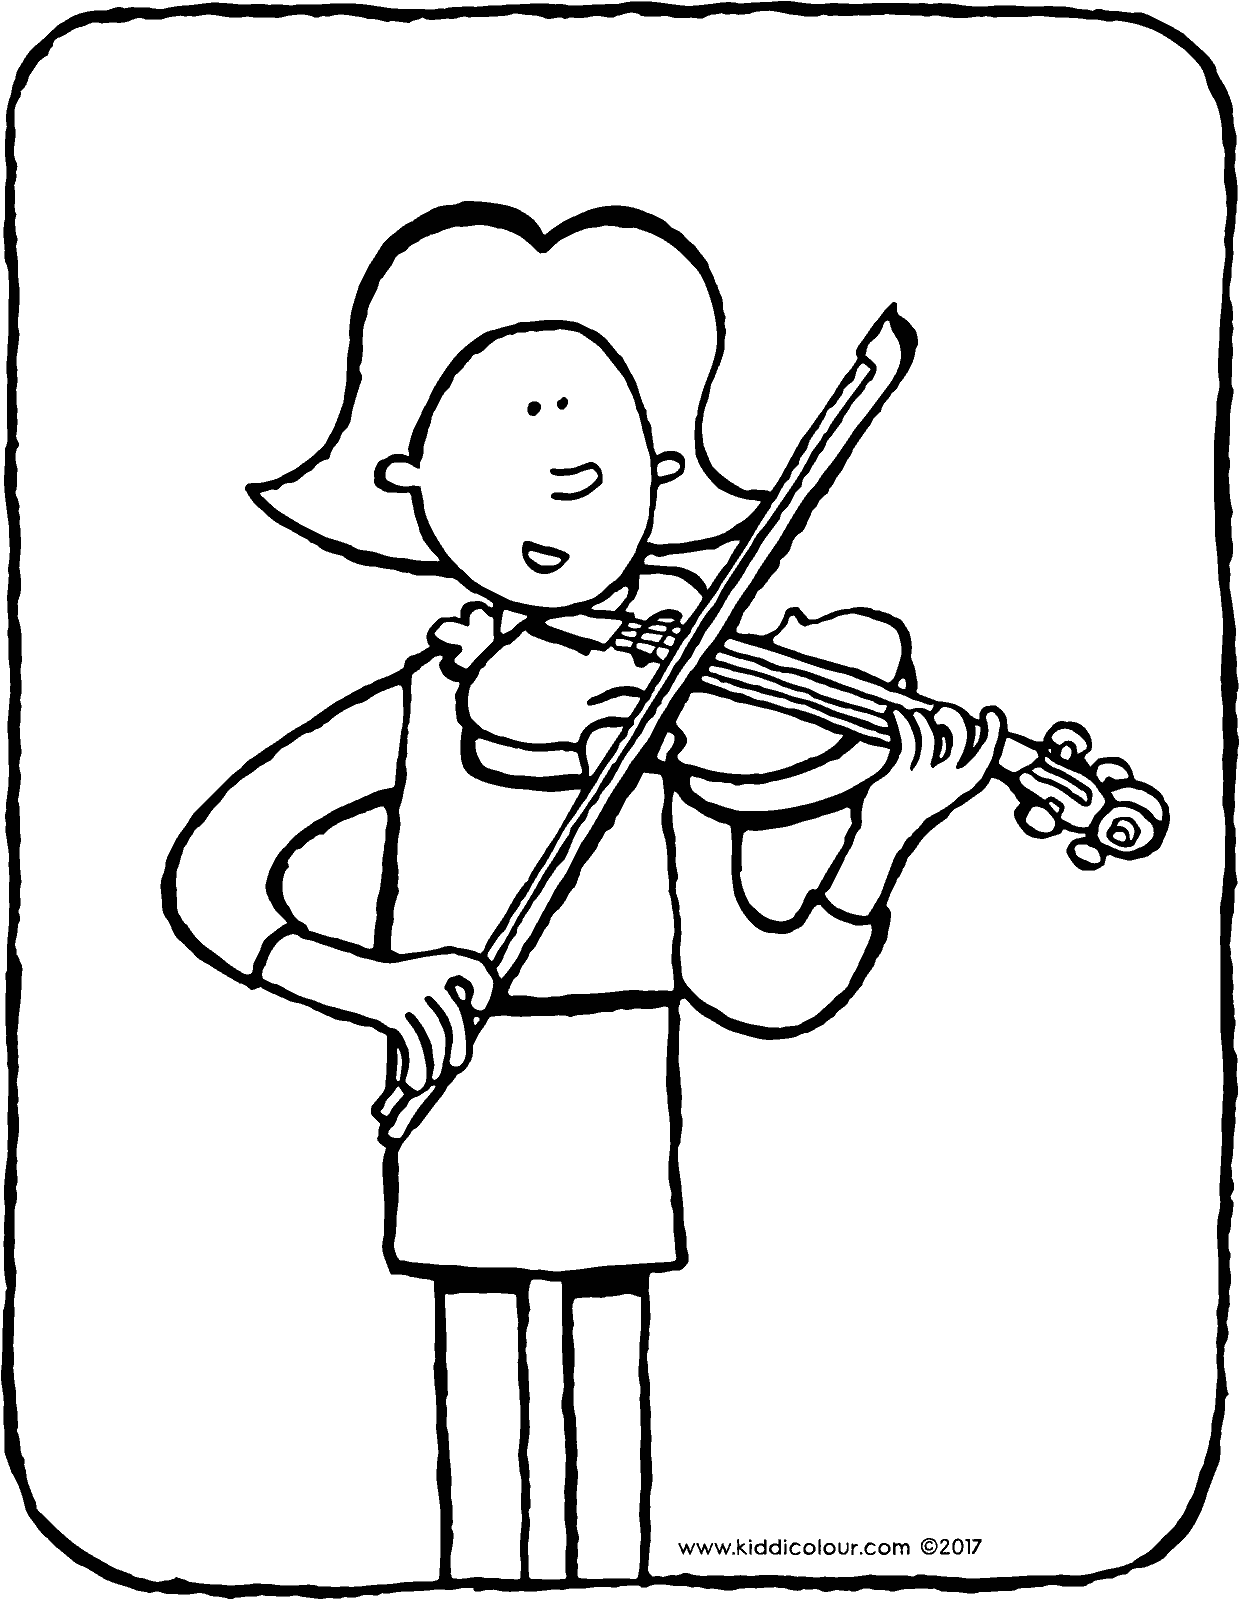 Emma plays violin colouring page page drawing picture 01V